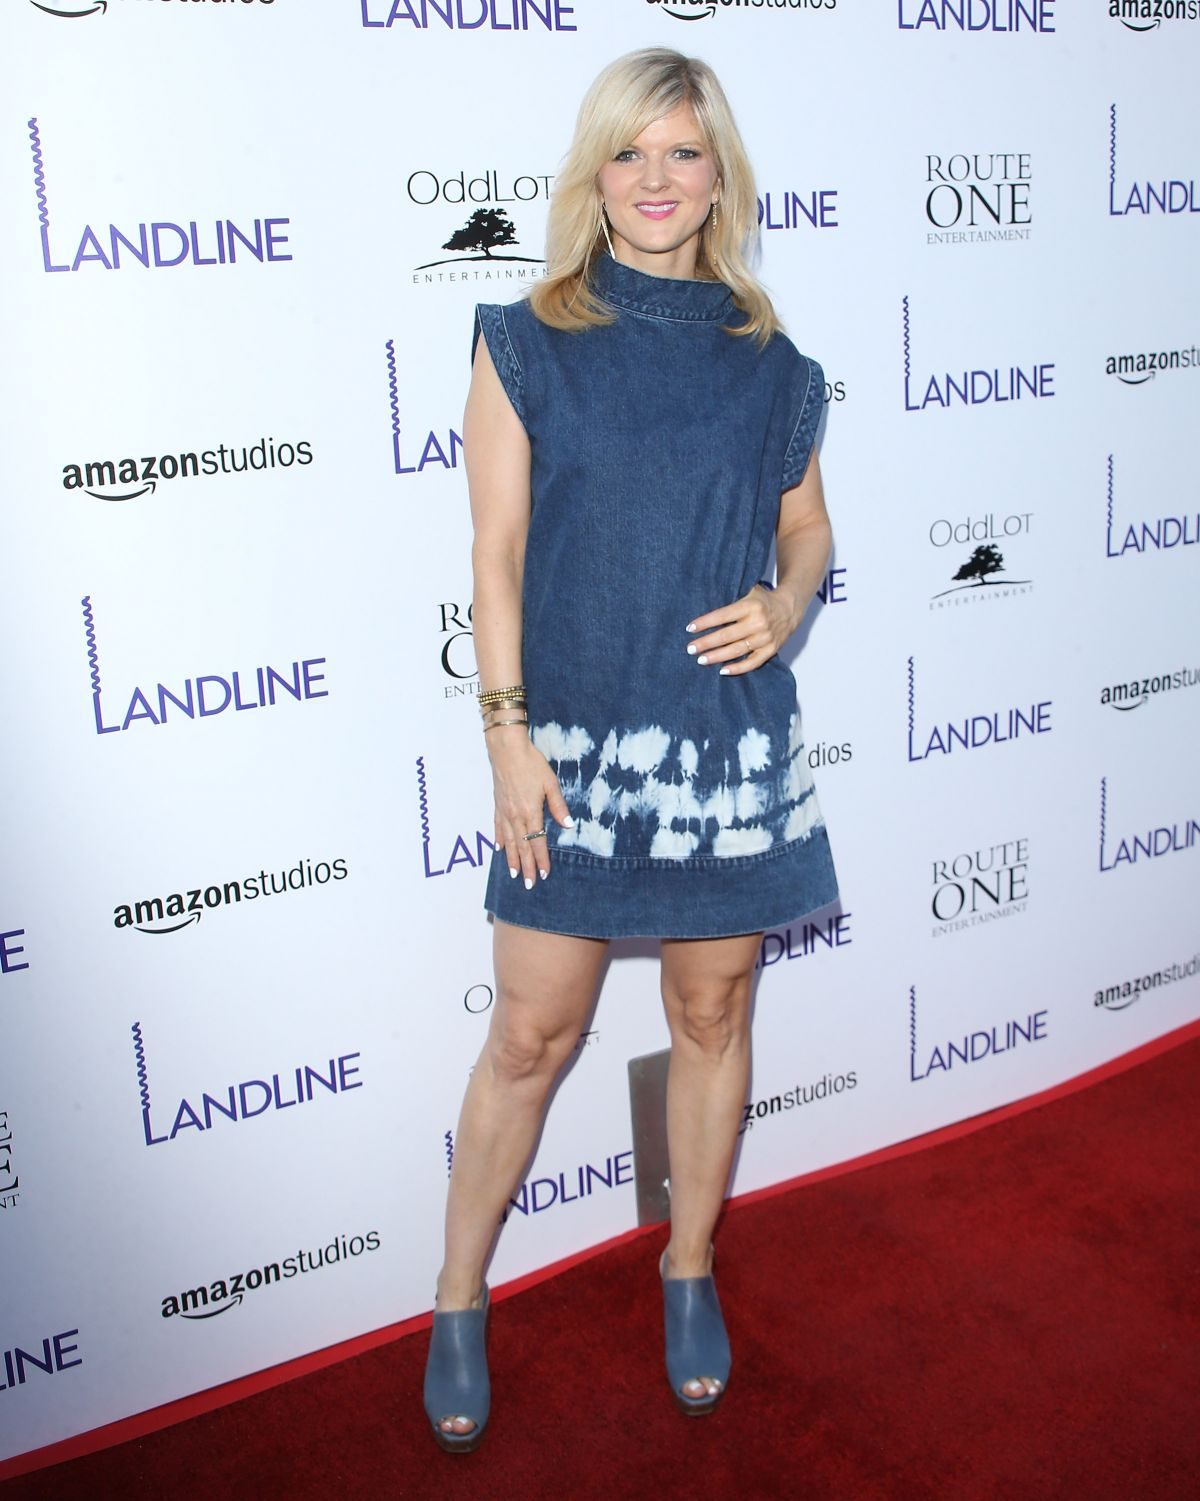 ARDEN MYRIN at Landline Premiere in Hollywood 07/12/2017